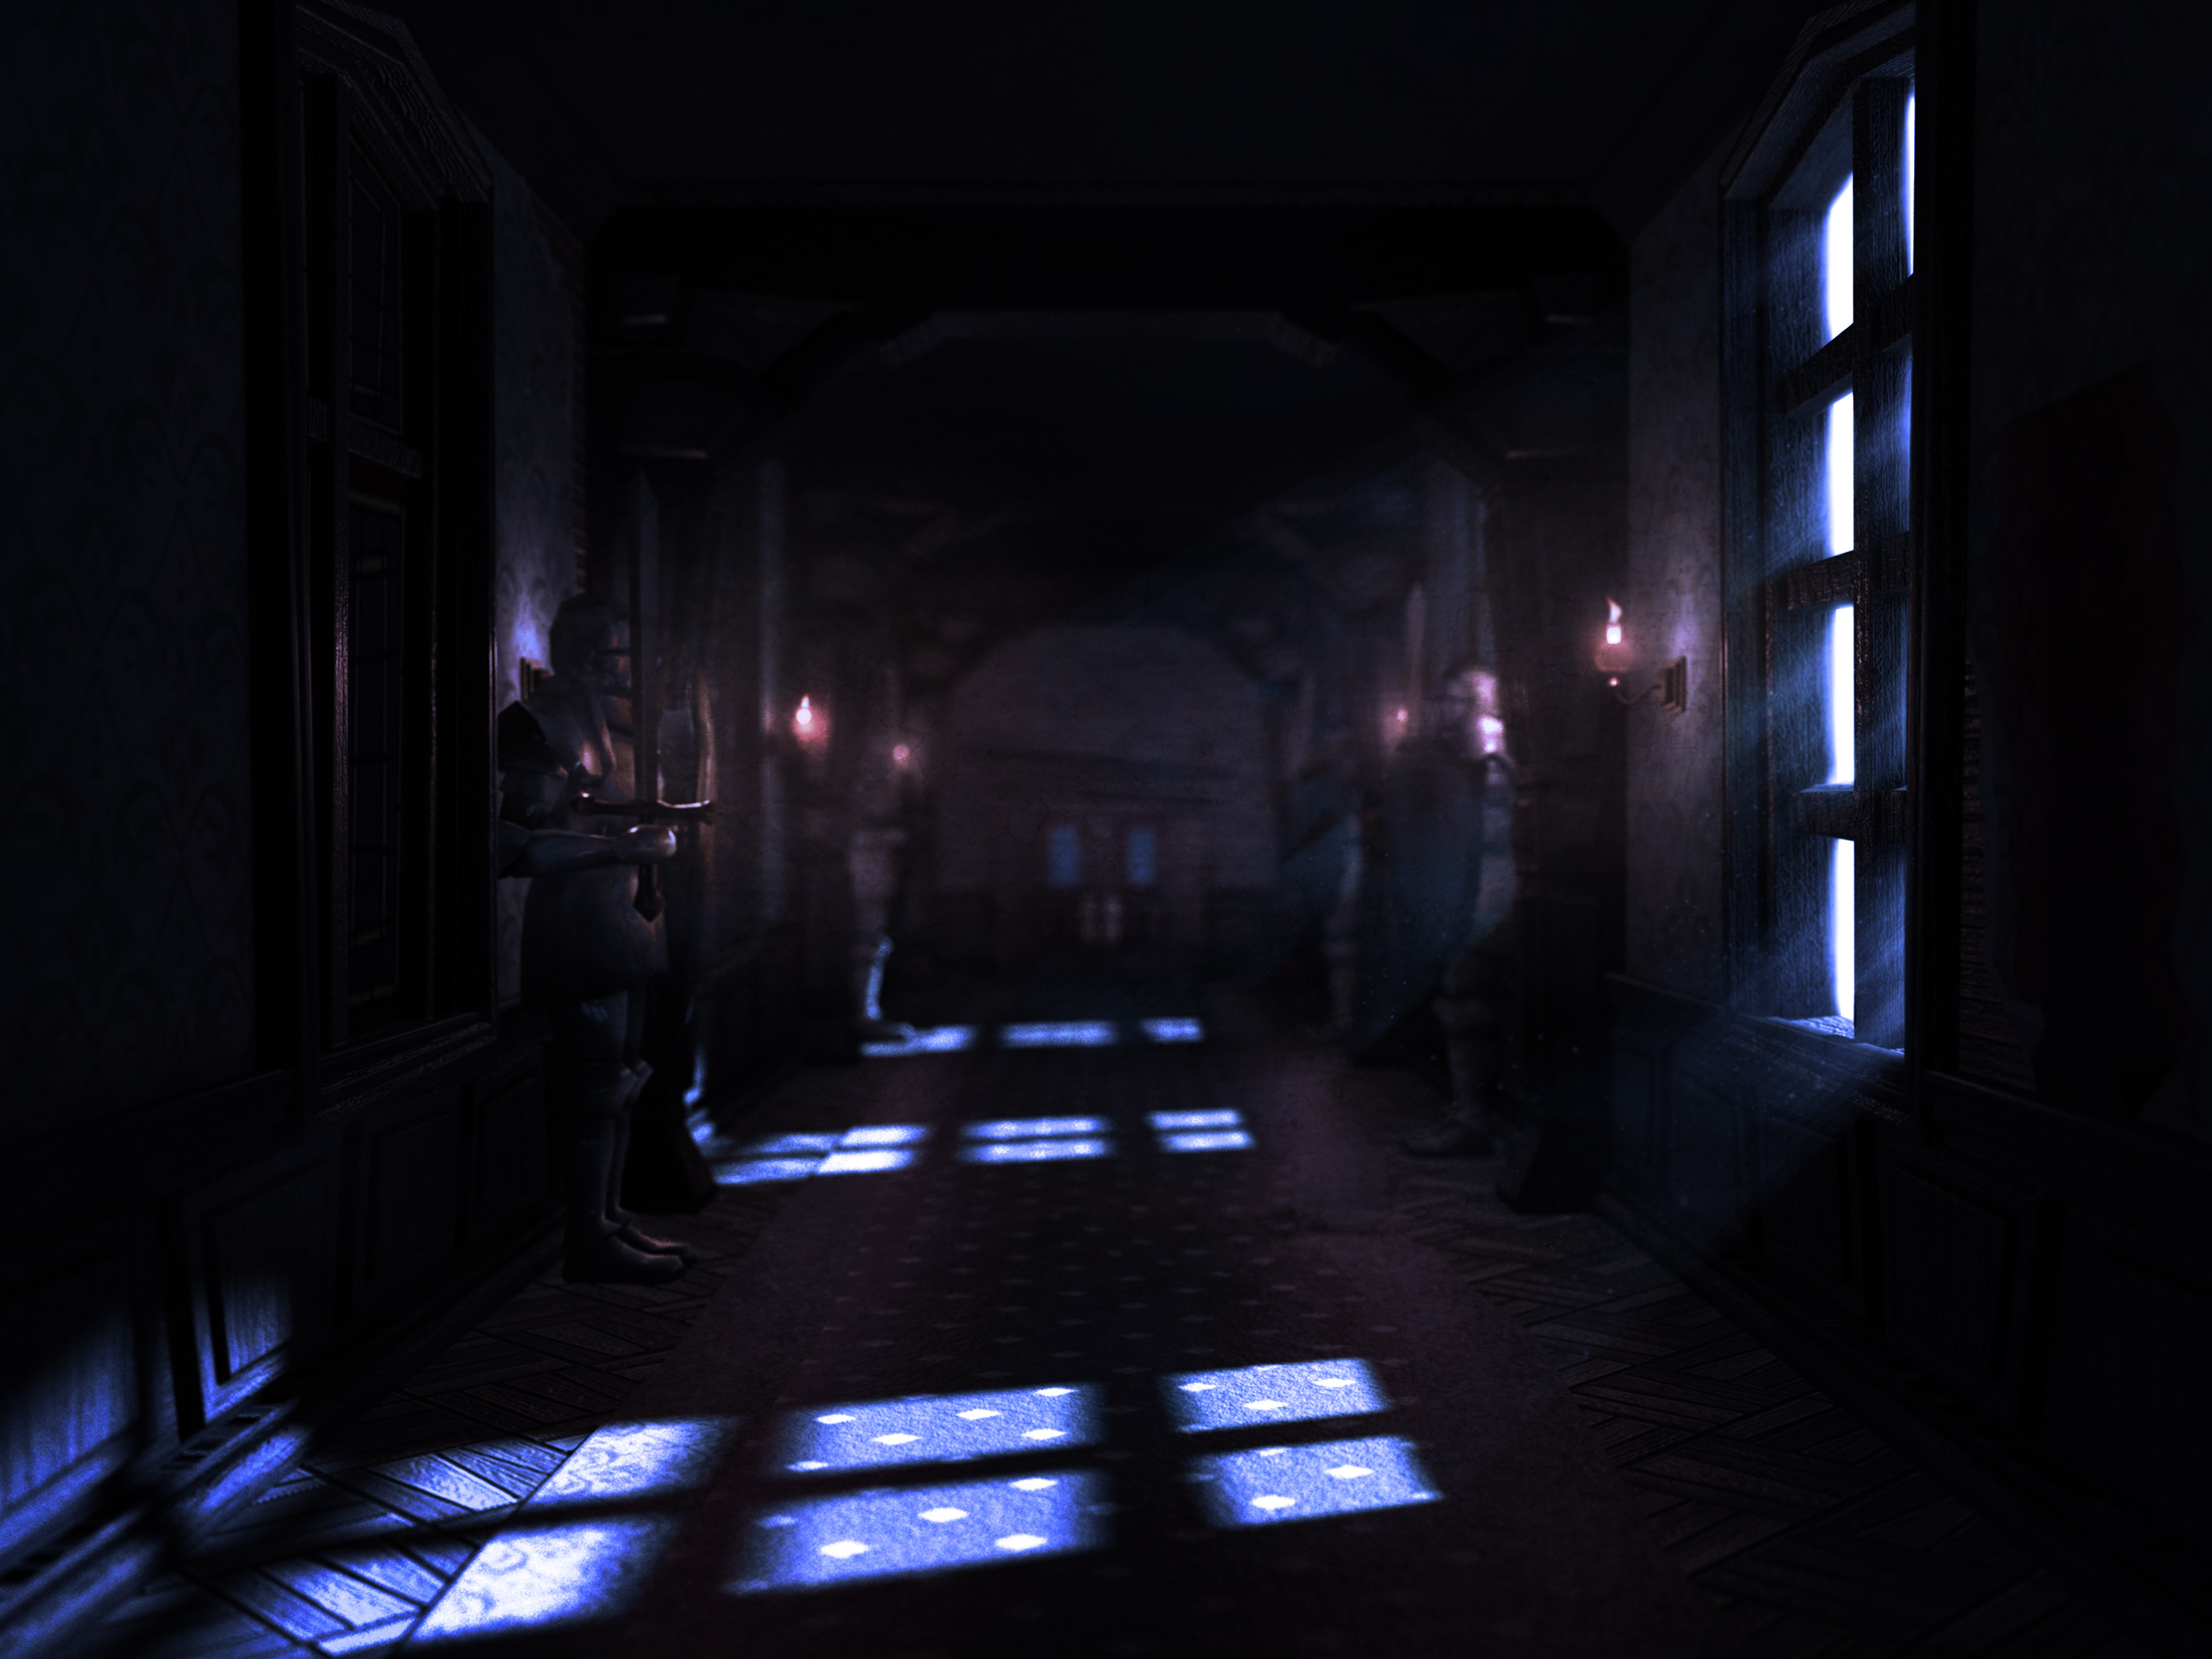 Luigi S Mansion Dark Room